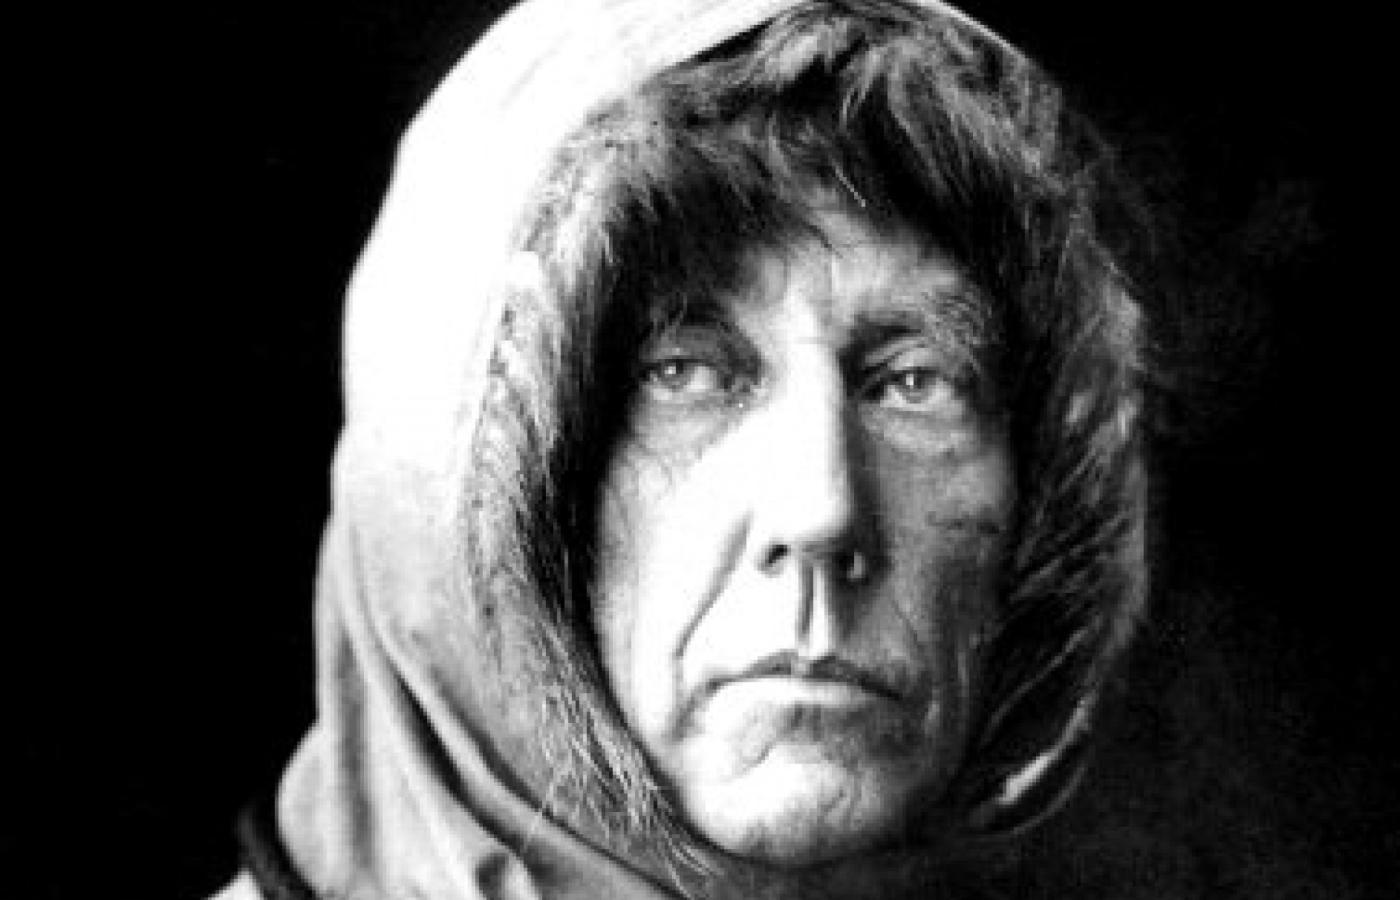 Roald Amundsen - the first European to complete the Northwest Passage by sea